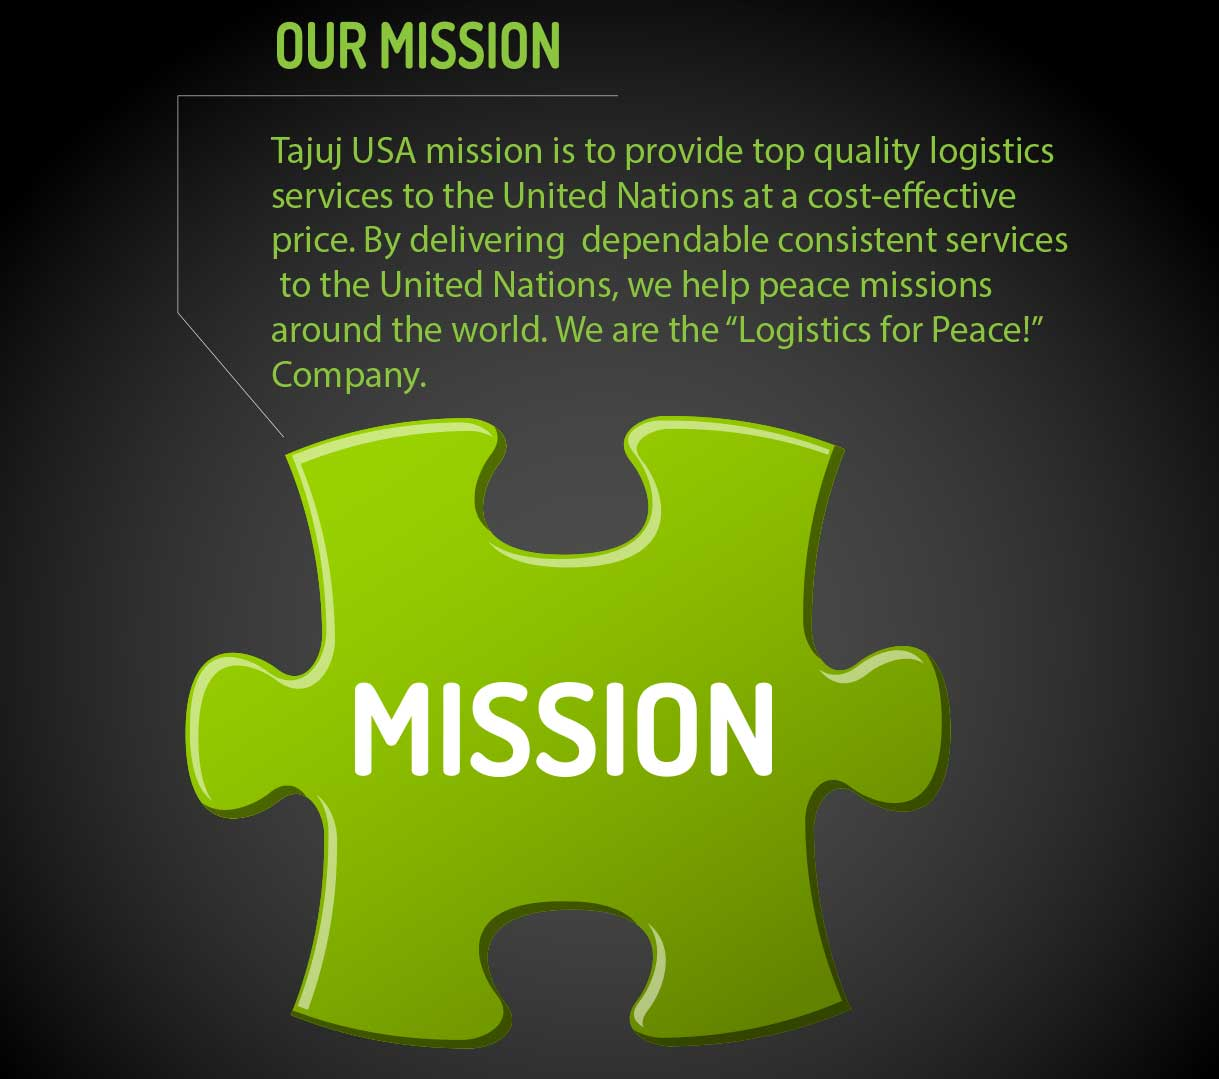 Our Mission mobile